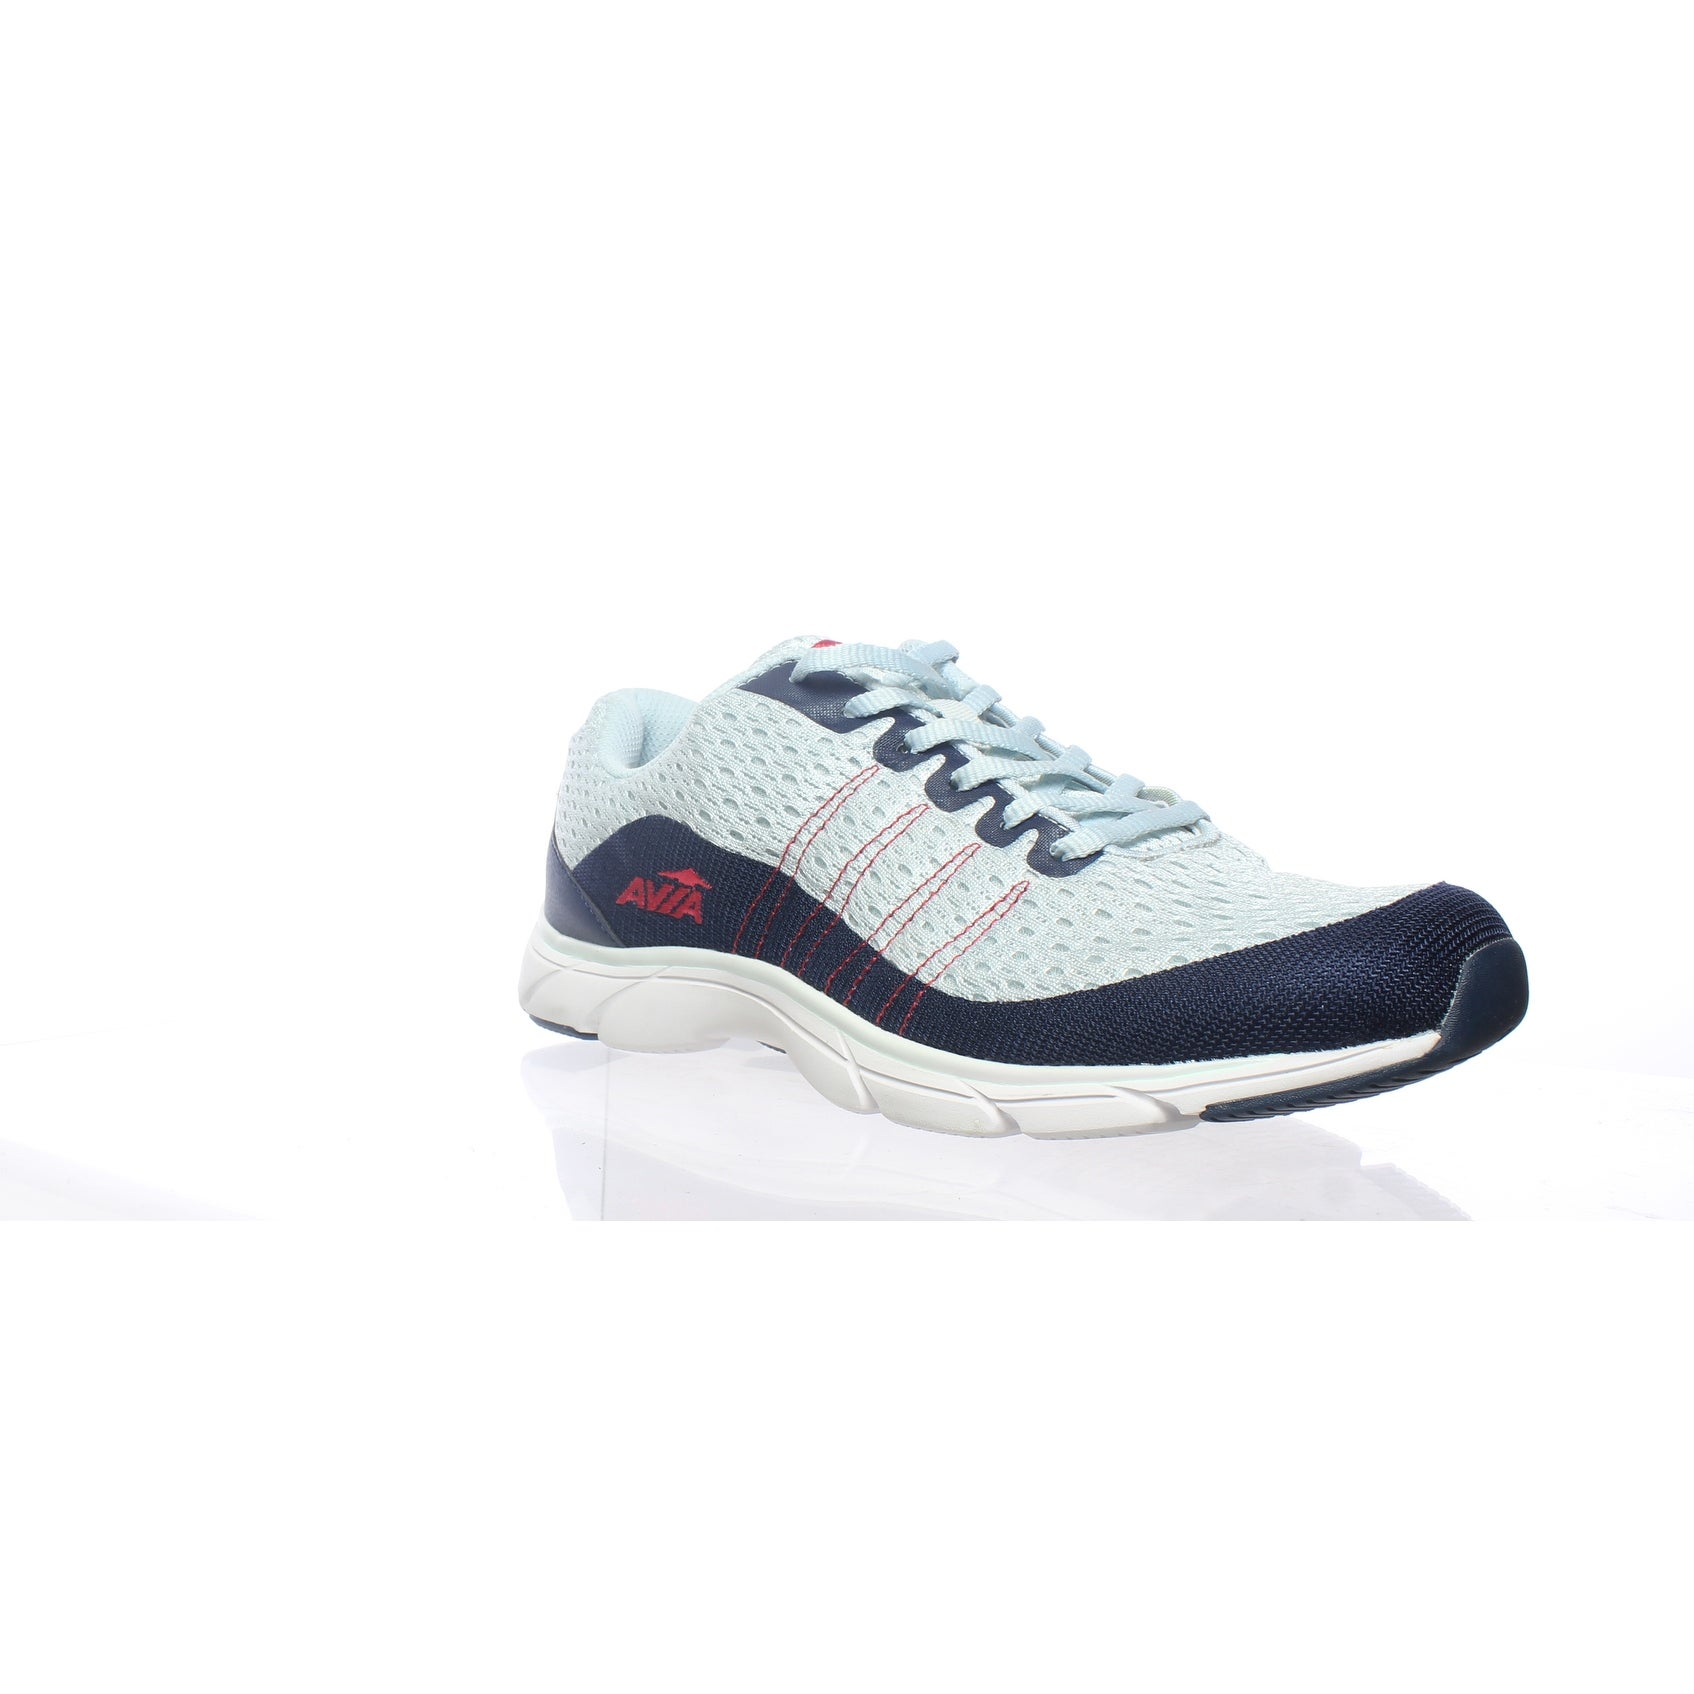 fda667f0d037 Buy Avia Women s Athletic Shoes Online at Overstock